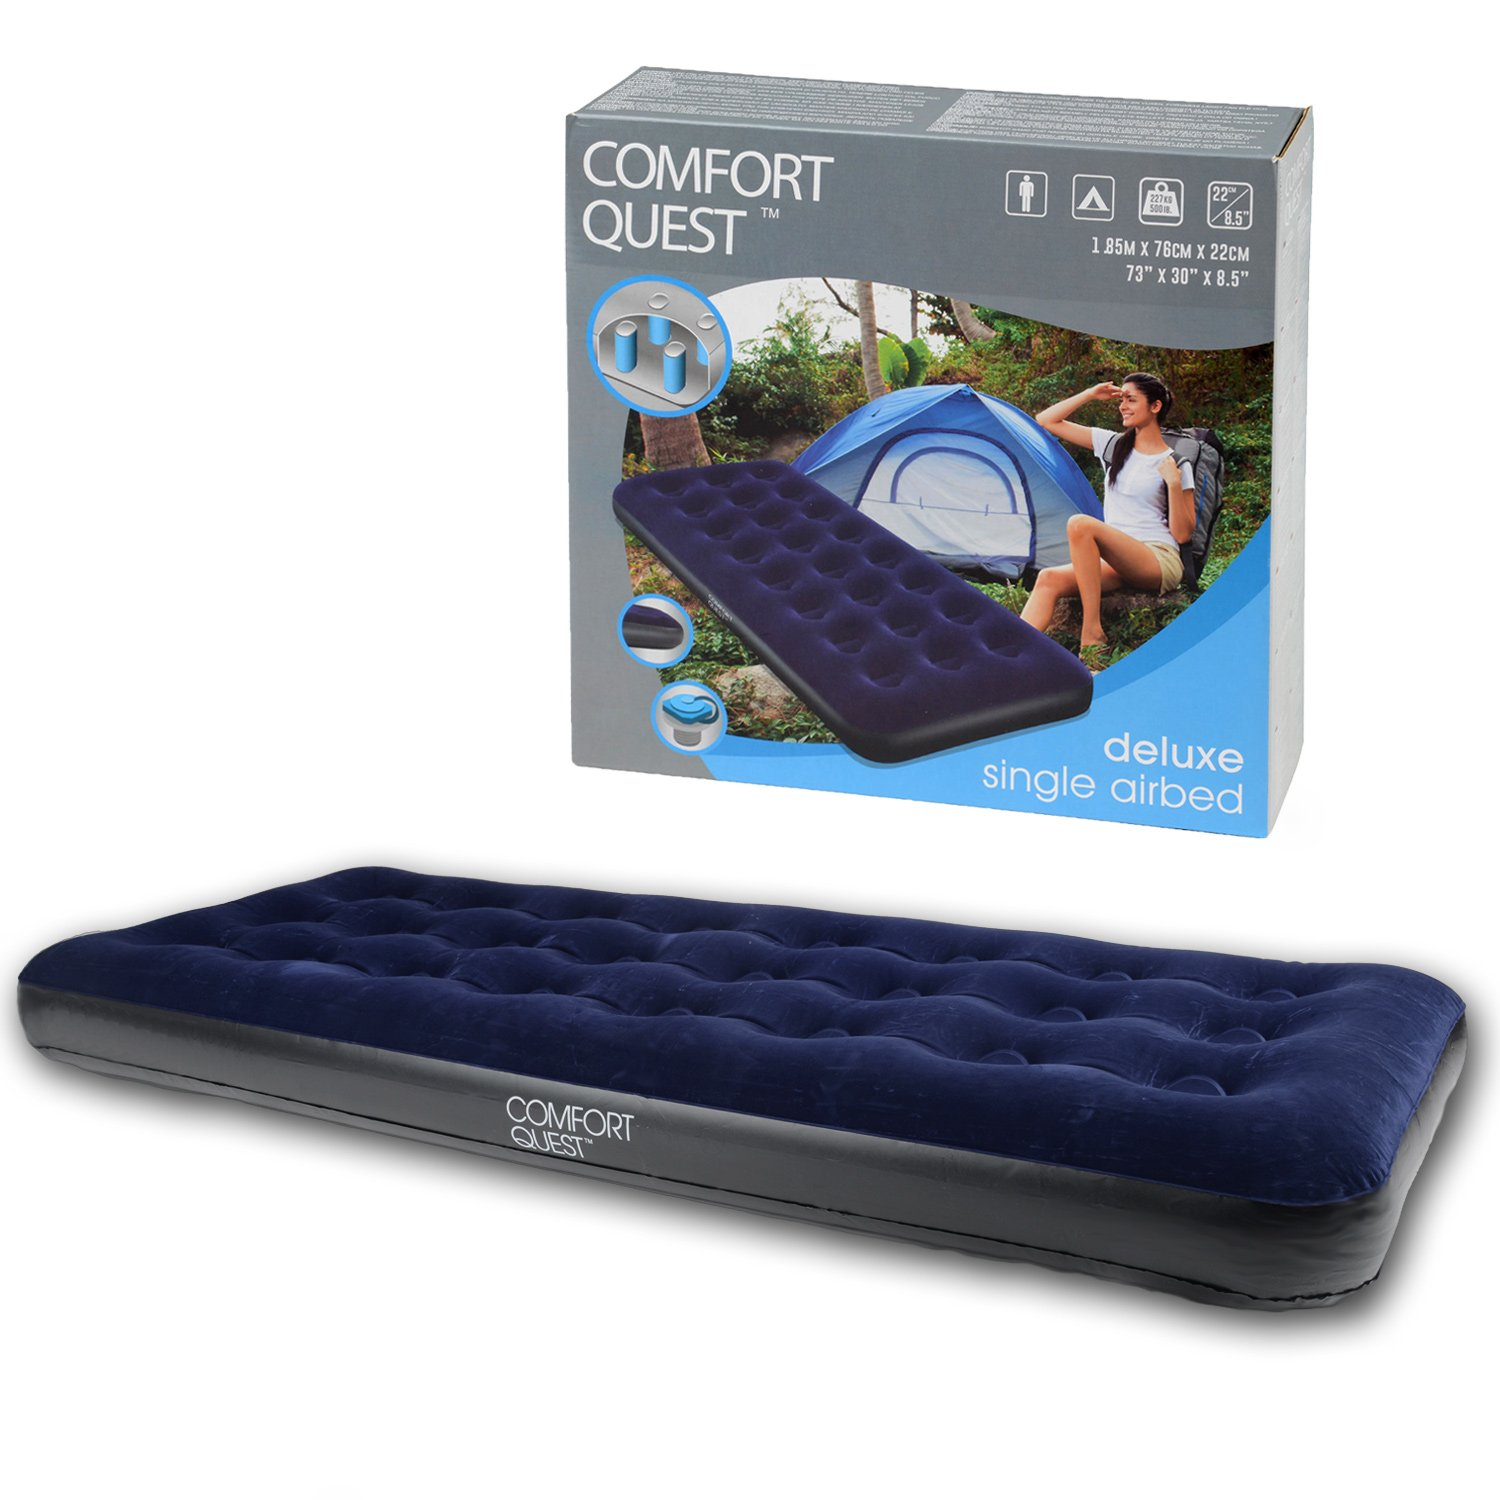 is box with inflatable air double it bag stores pump and queen bed this available uk airbed beds at dreamair